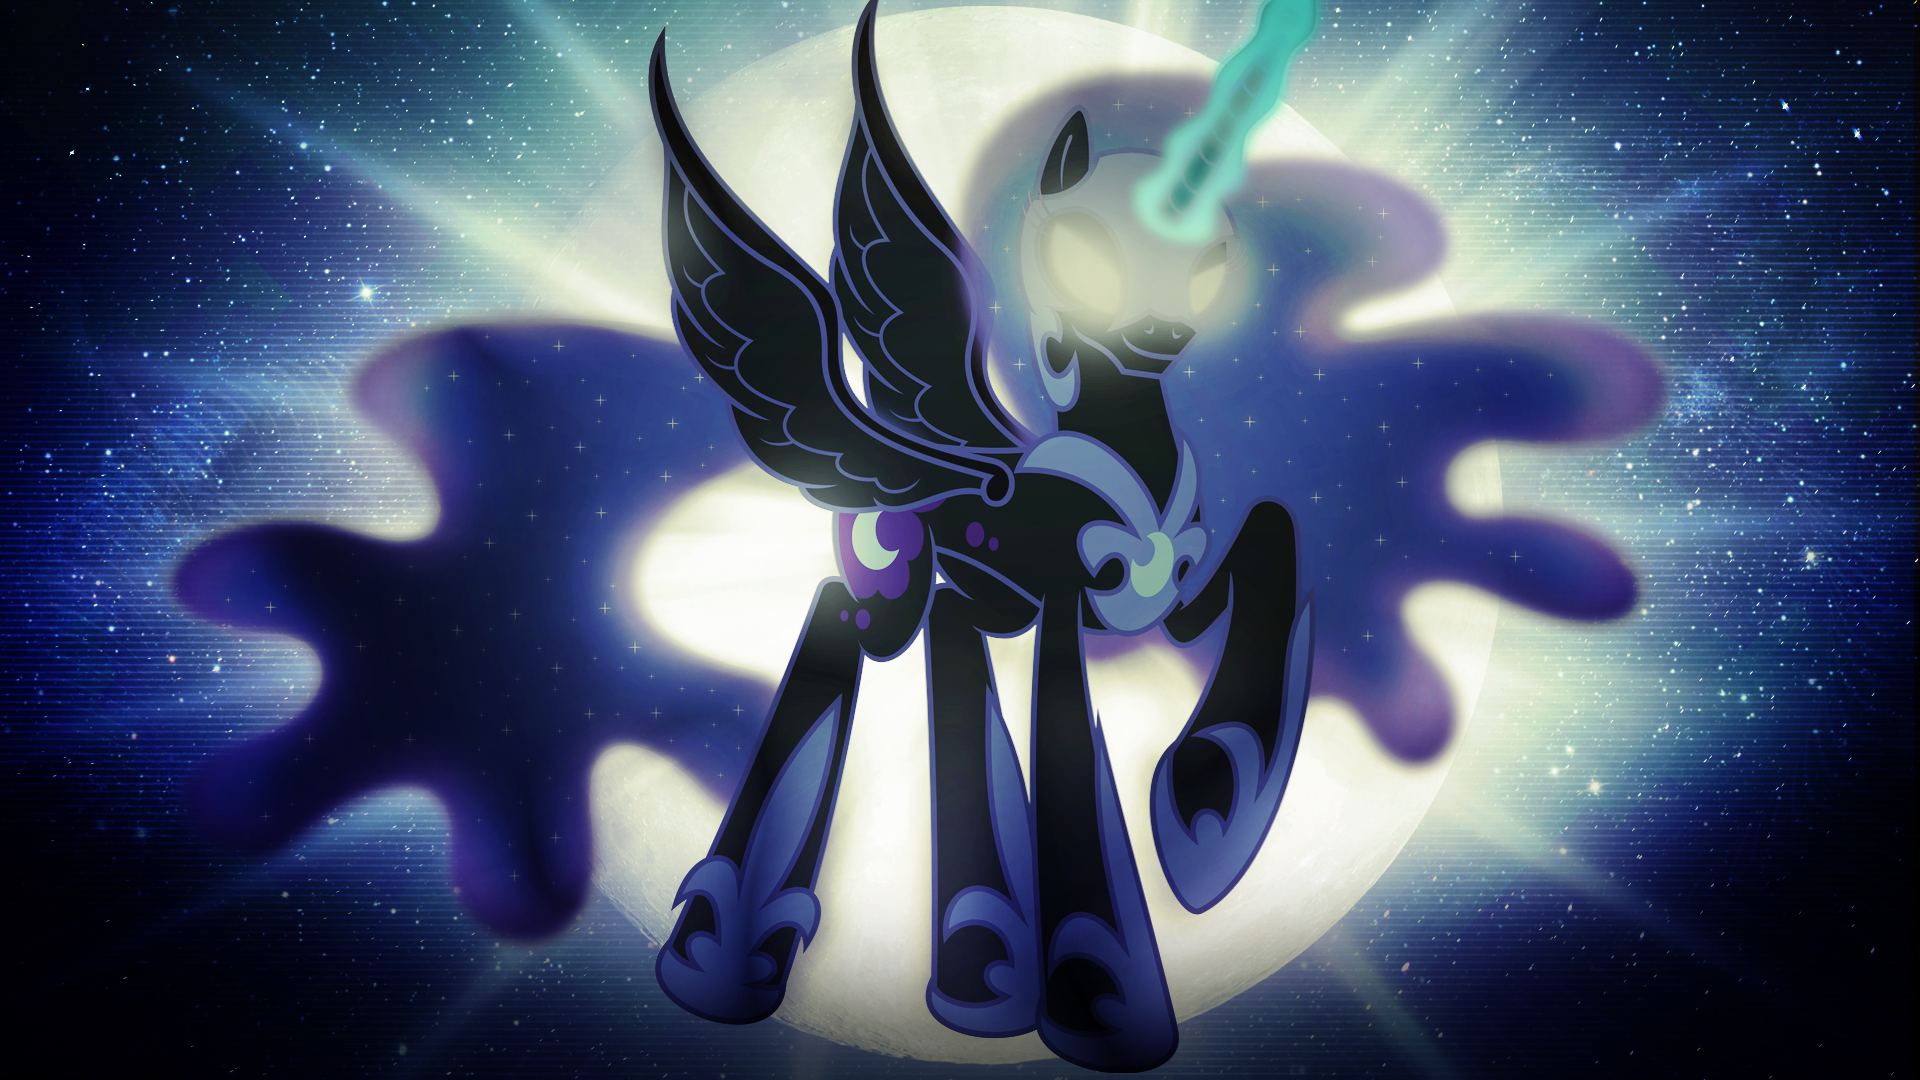 Mlp Nightmare Moon Desktop Wallpaper Wallpapersafari